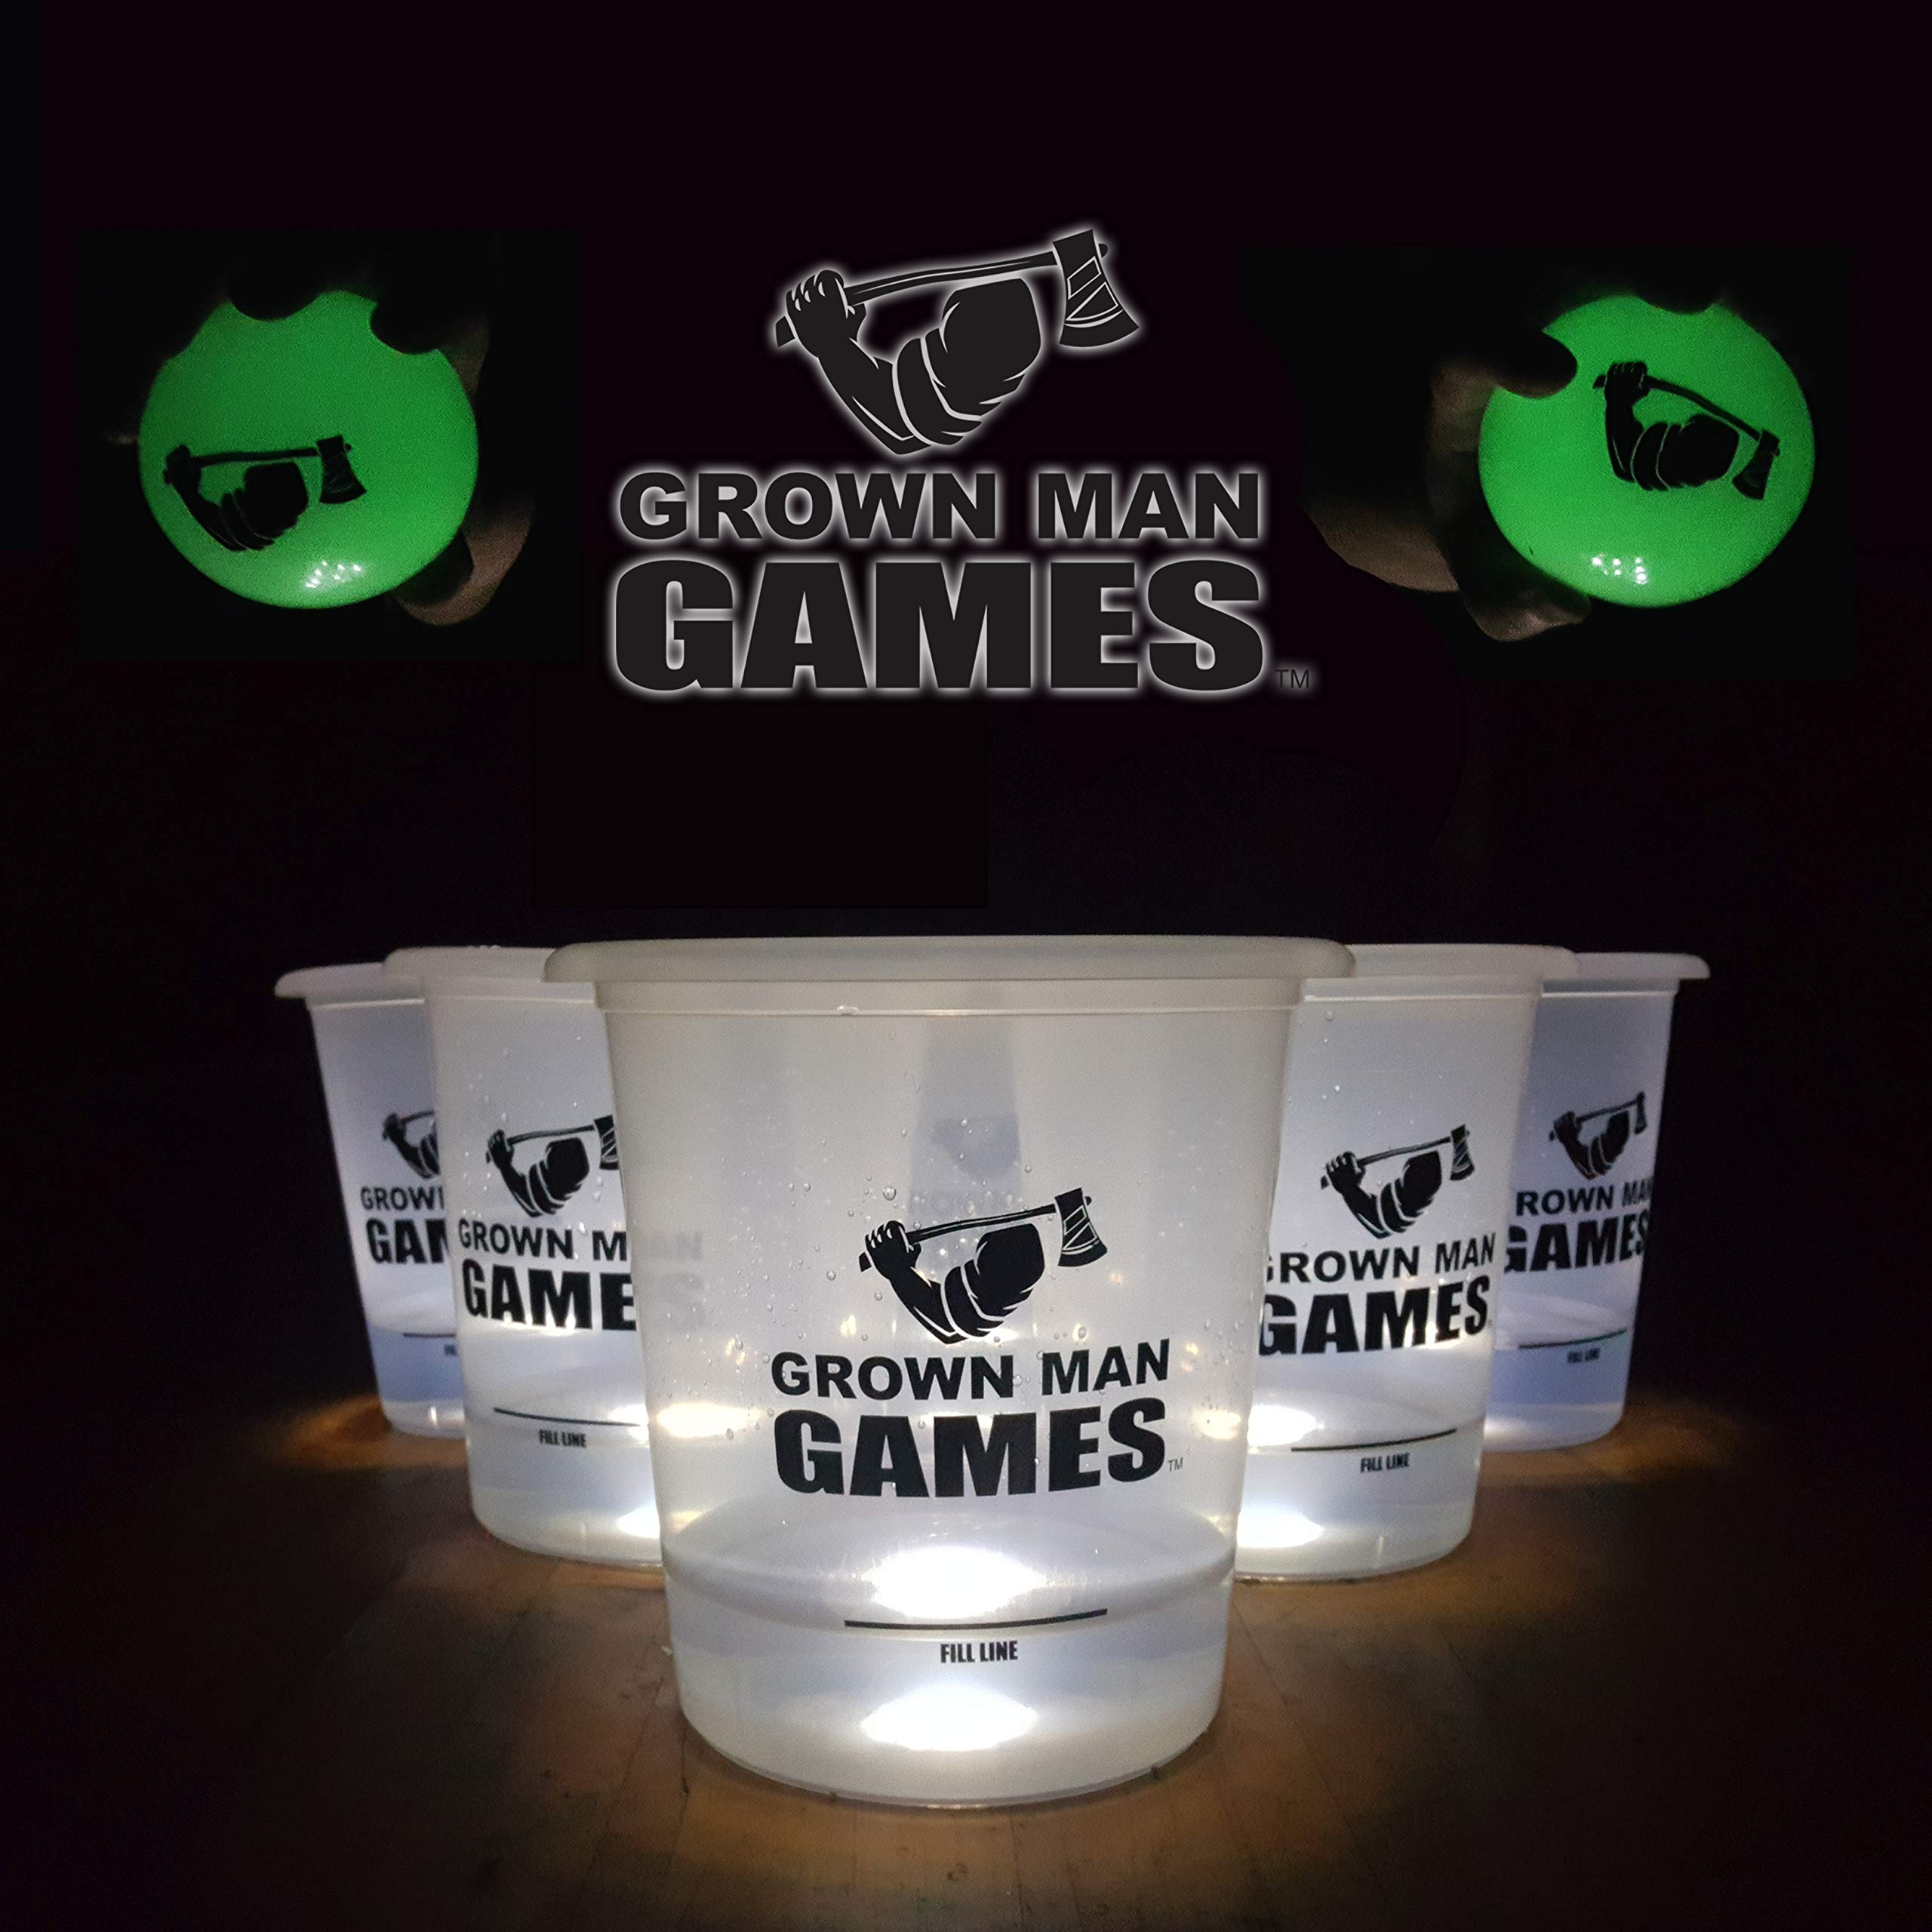 Grown Man Games Glow in The Dark Yard Pong - Giant Beer Pong Drinking Game/Yard Game - Outdoor Games for Kids and Adults - Bucket Pong Beach Game